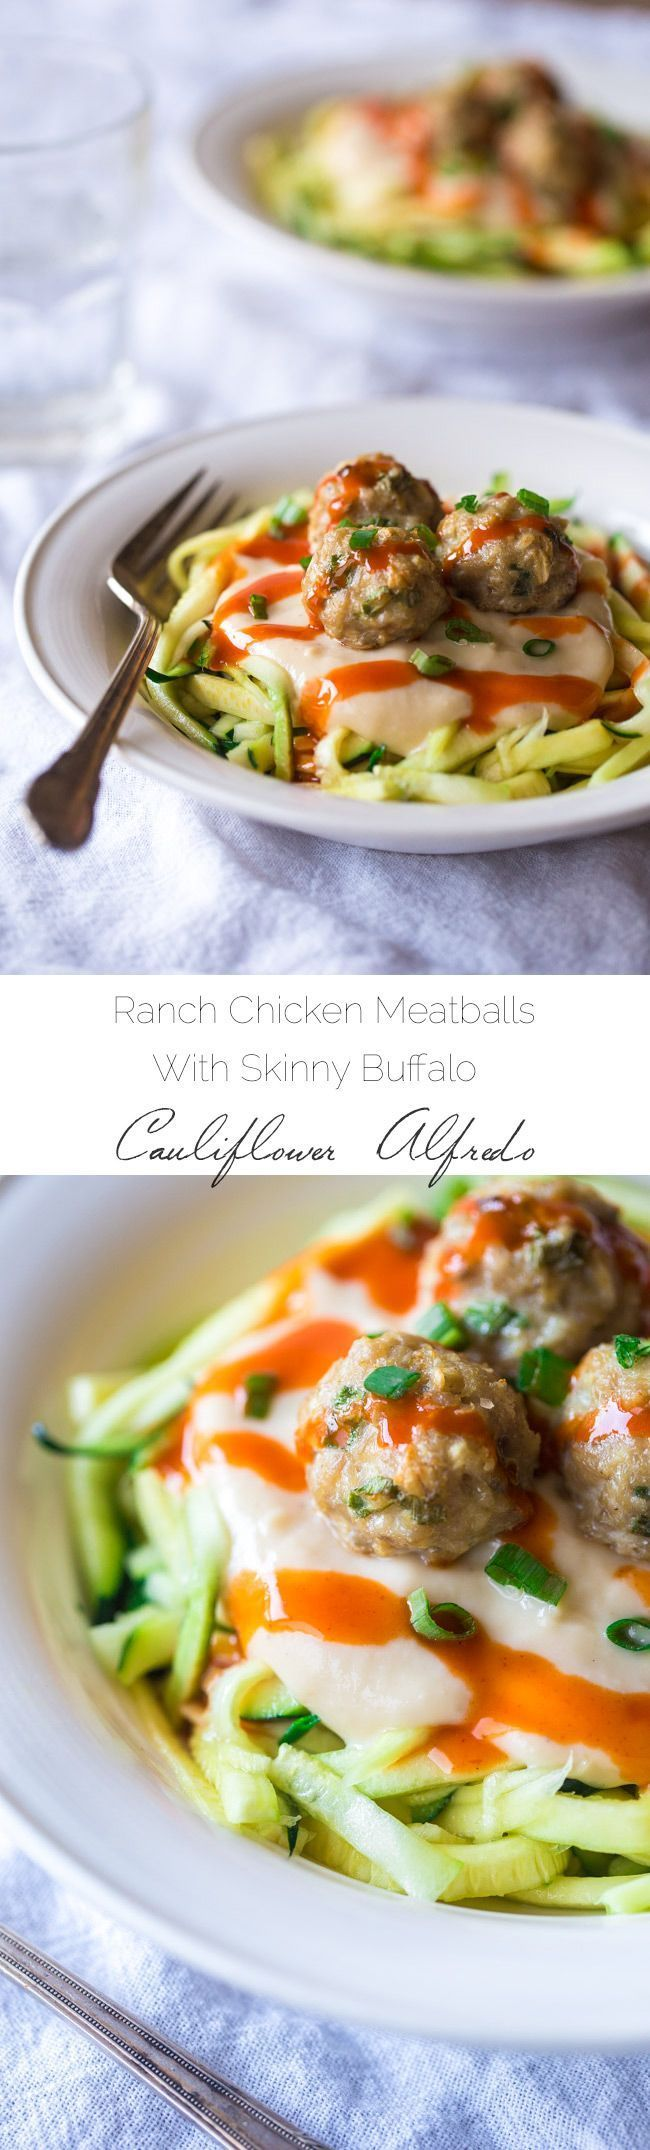 Buffalo Chicken Meatballs with Skinny Buffalo Cauliflower Alfredo - A Dinner perfect for Game Day that is SO healthy and easy! You would never know it's gluten free, low carb and PACKED with protein!  | Foodfaithfitness.com | @FoodFaithFit